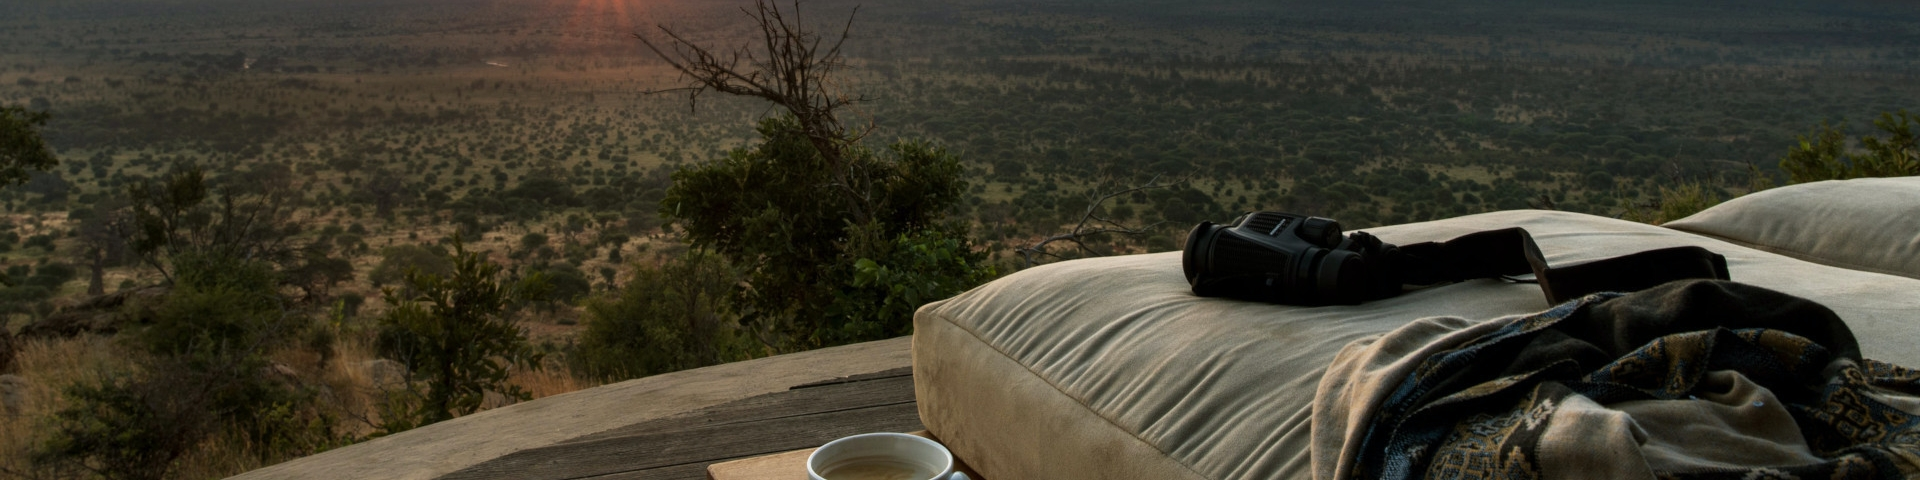 Accommodation in Tarangire National Park Tanzania View over Plains